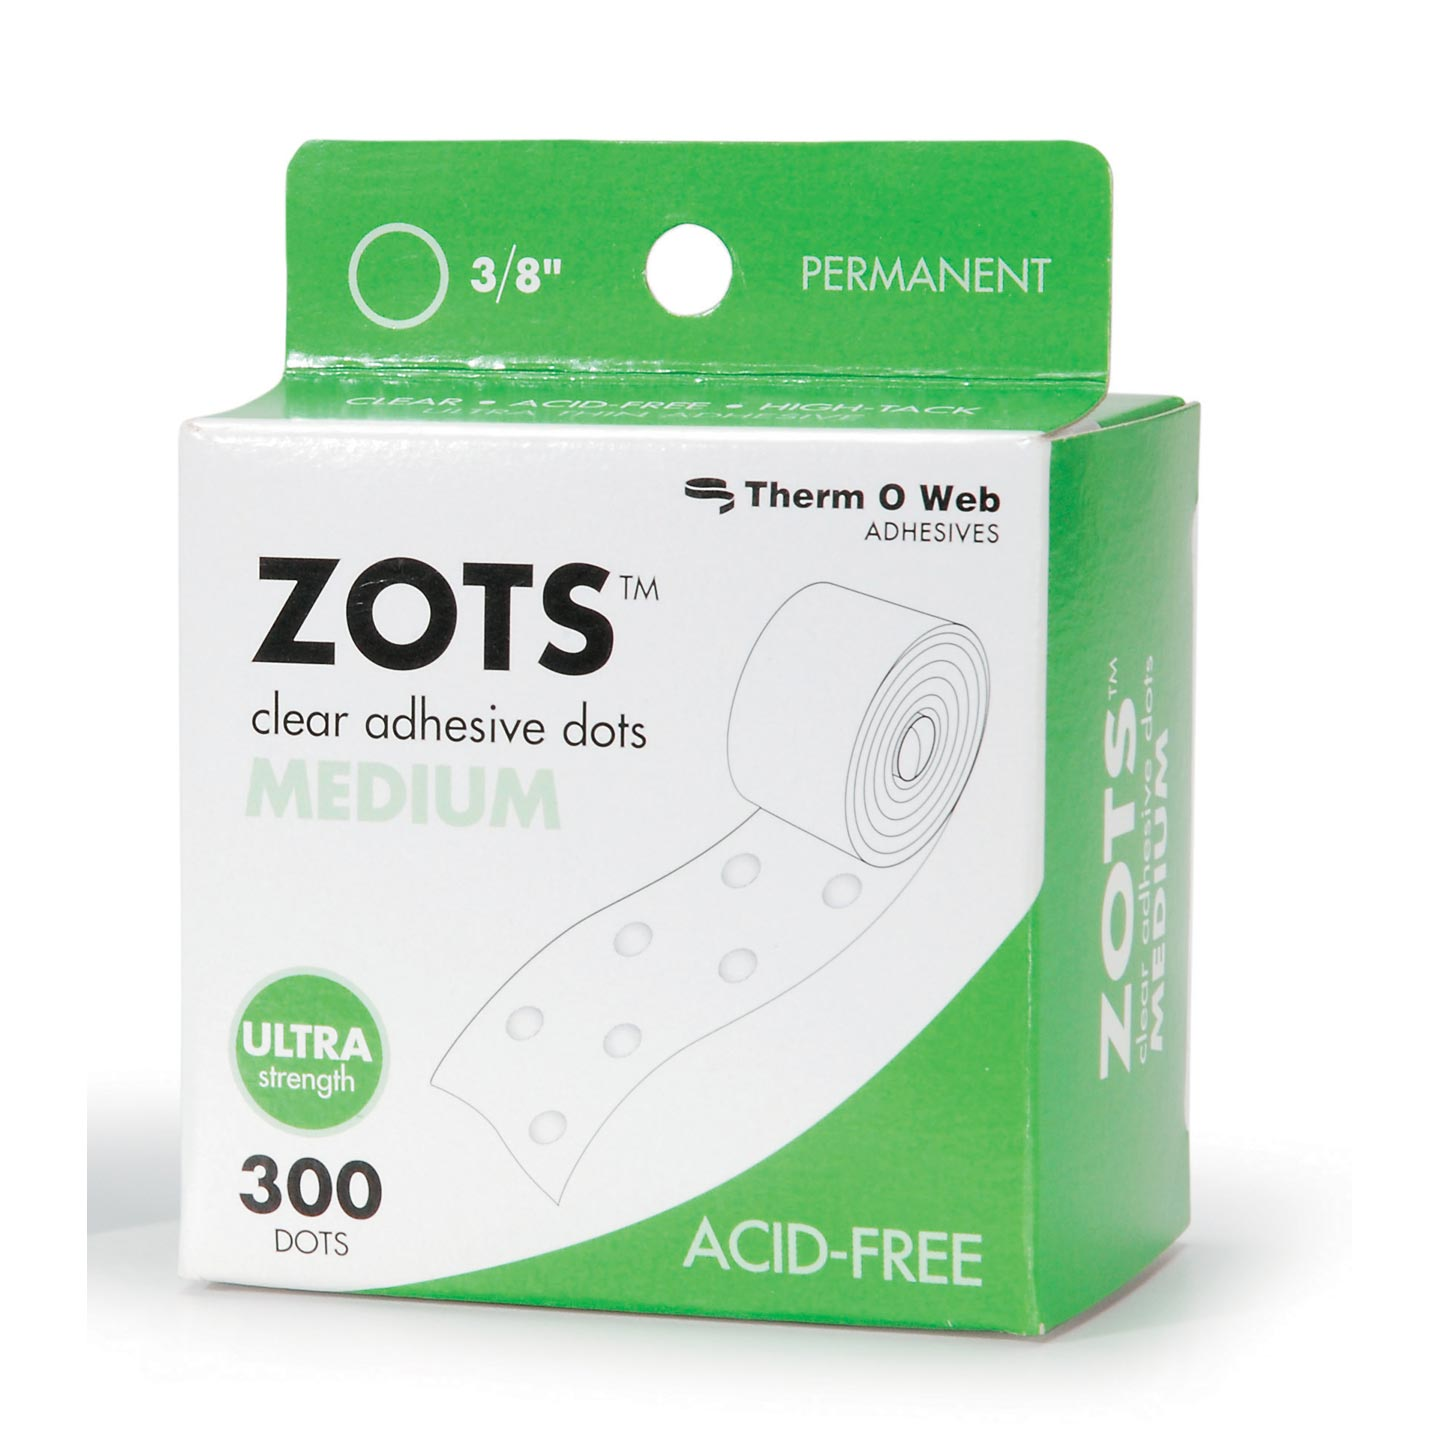 Zots Adhesive Dots Medium .375In Diam .015In Thick 300Ct Rol